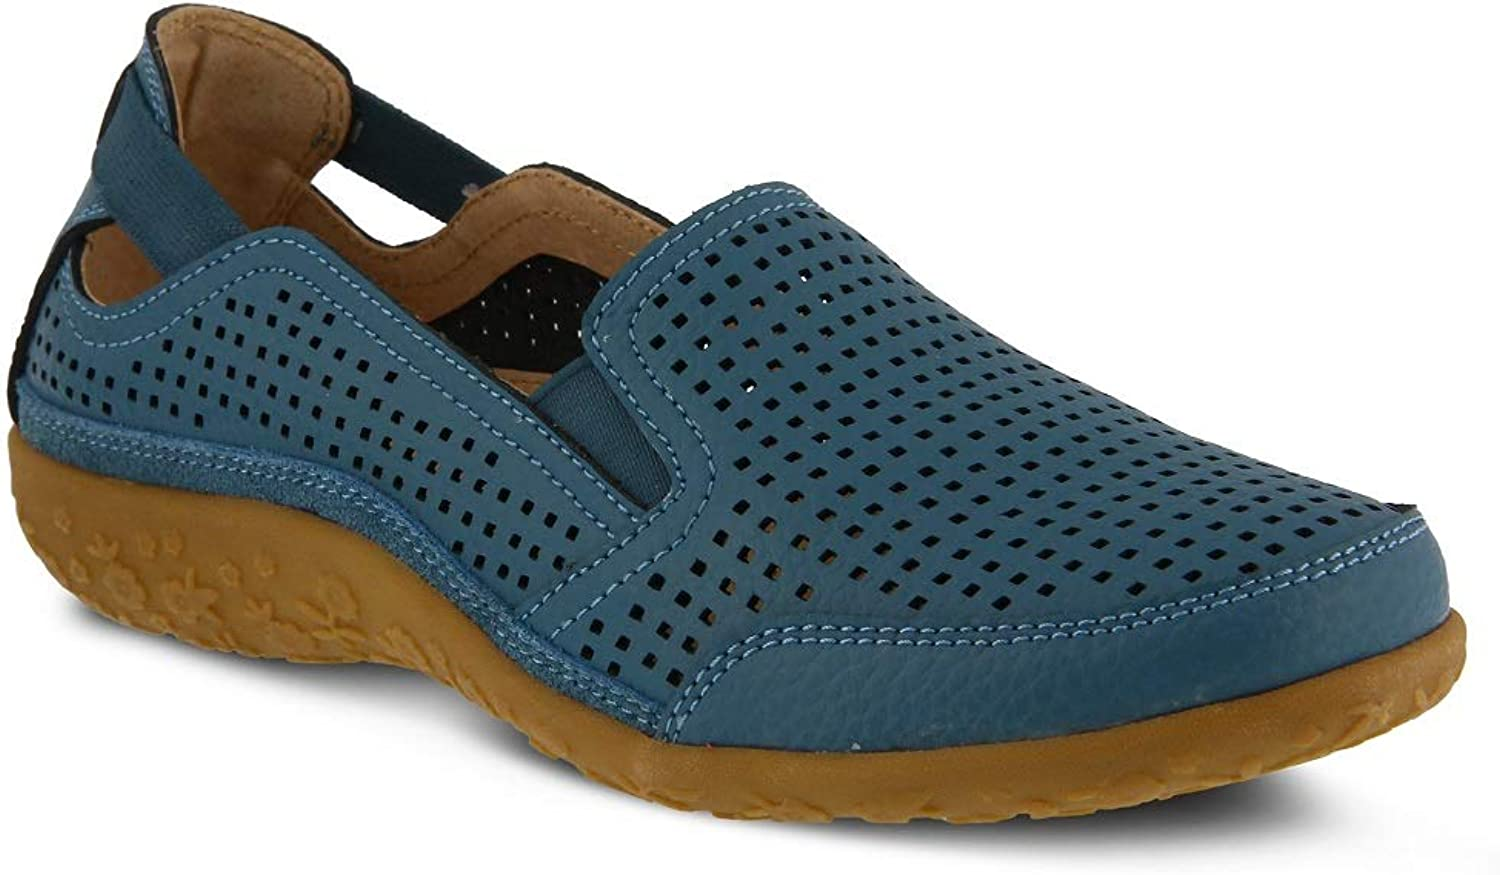 Spring Step Women's Juhi shoes   color bluee   Leather shoes